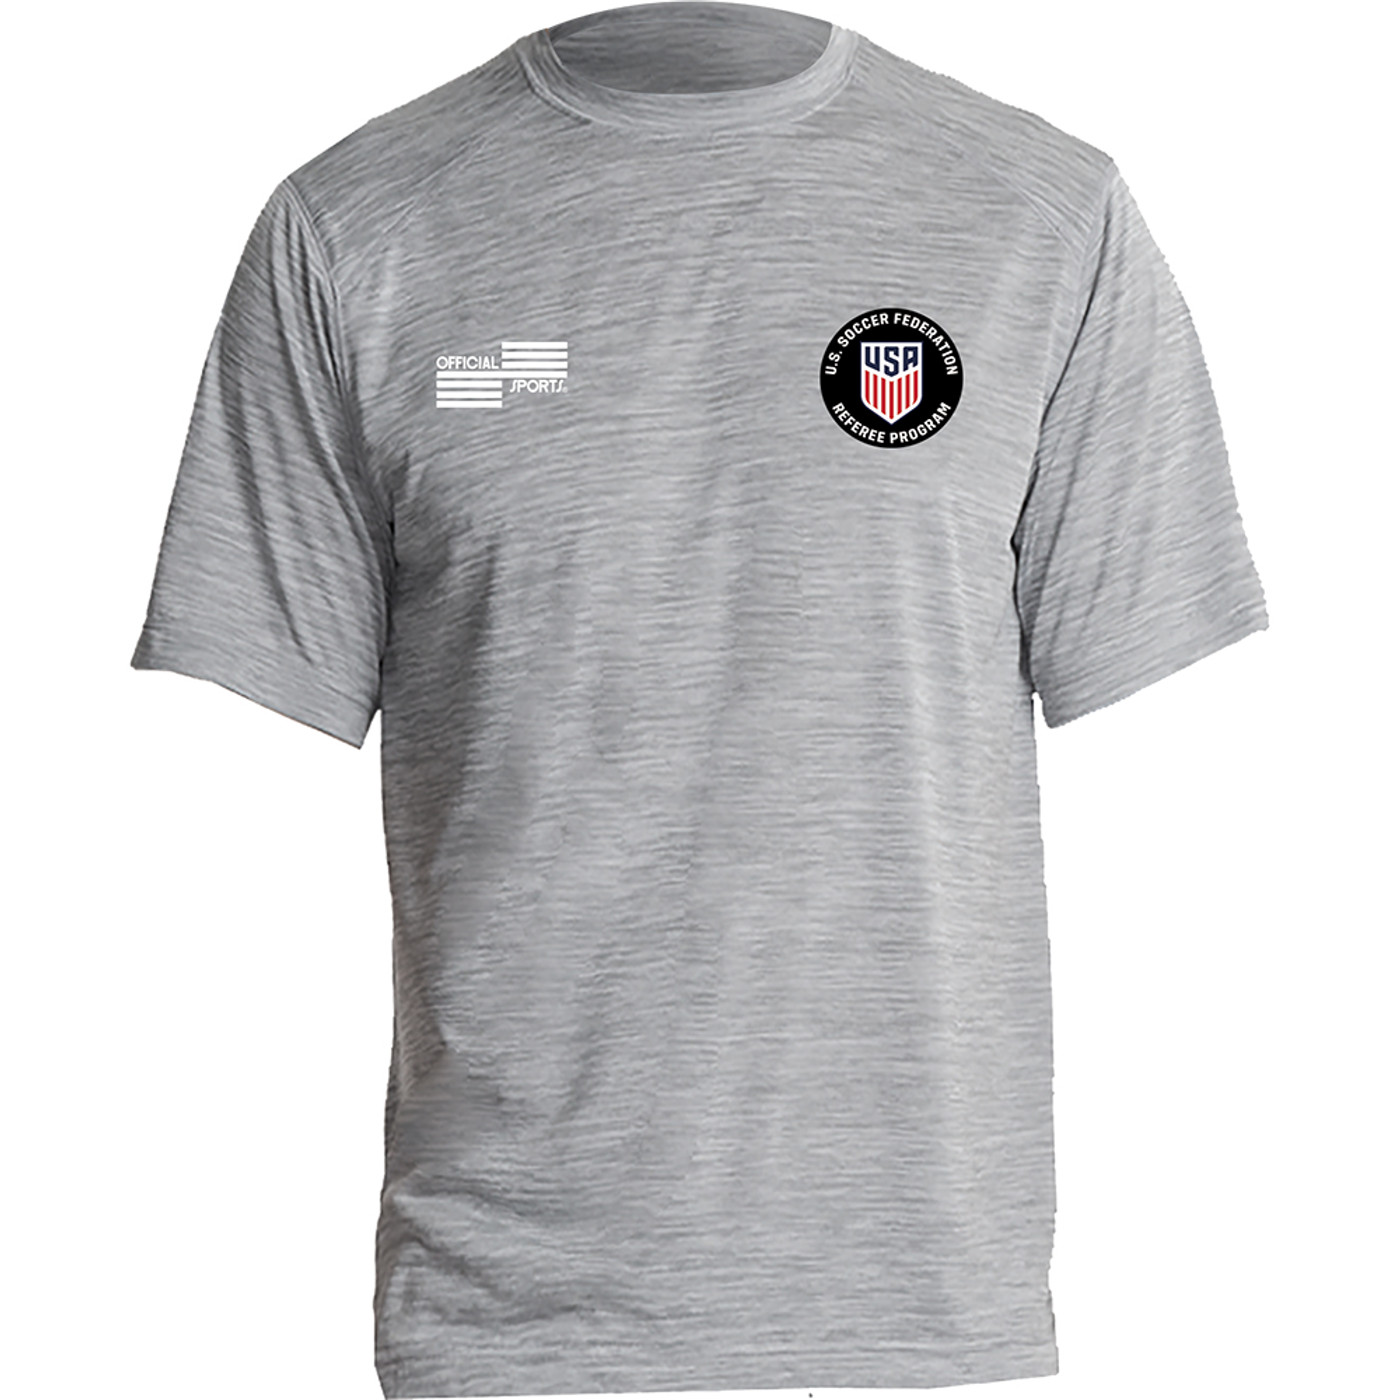 2000CL USSF Heathered Training T-Shirt